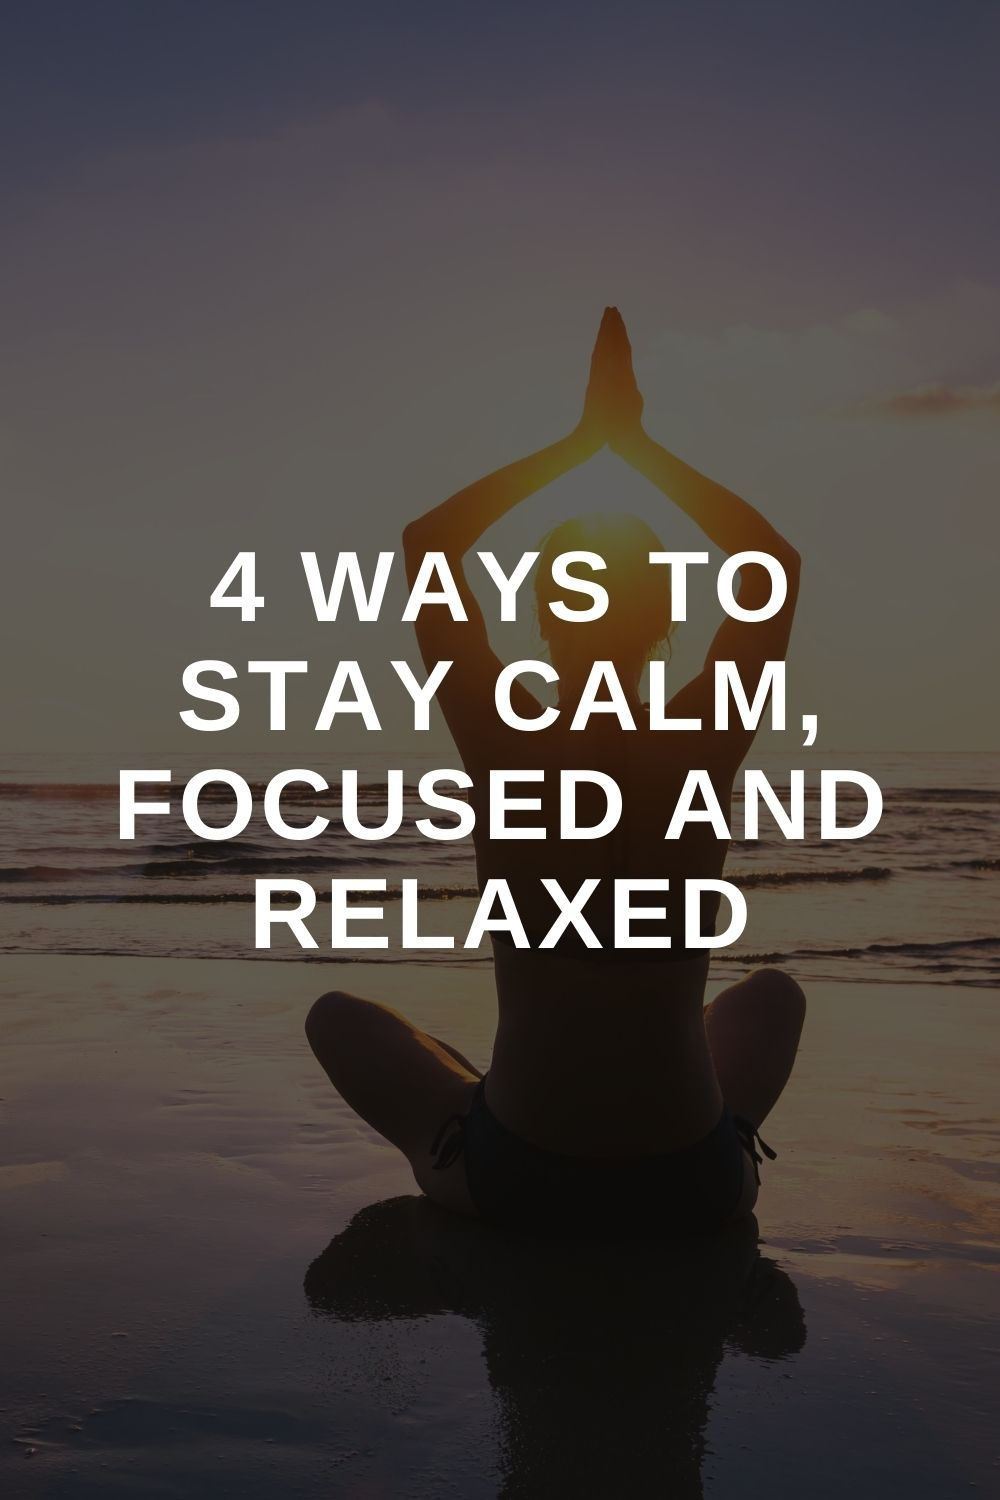 4 Ways To Stay Calm, Focused and Relaxed